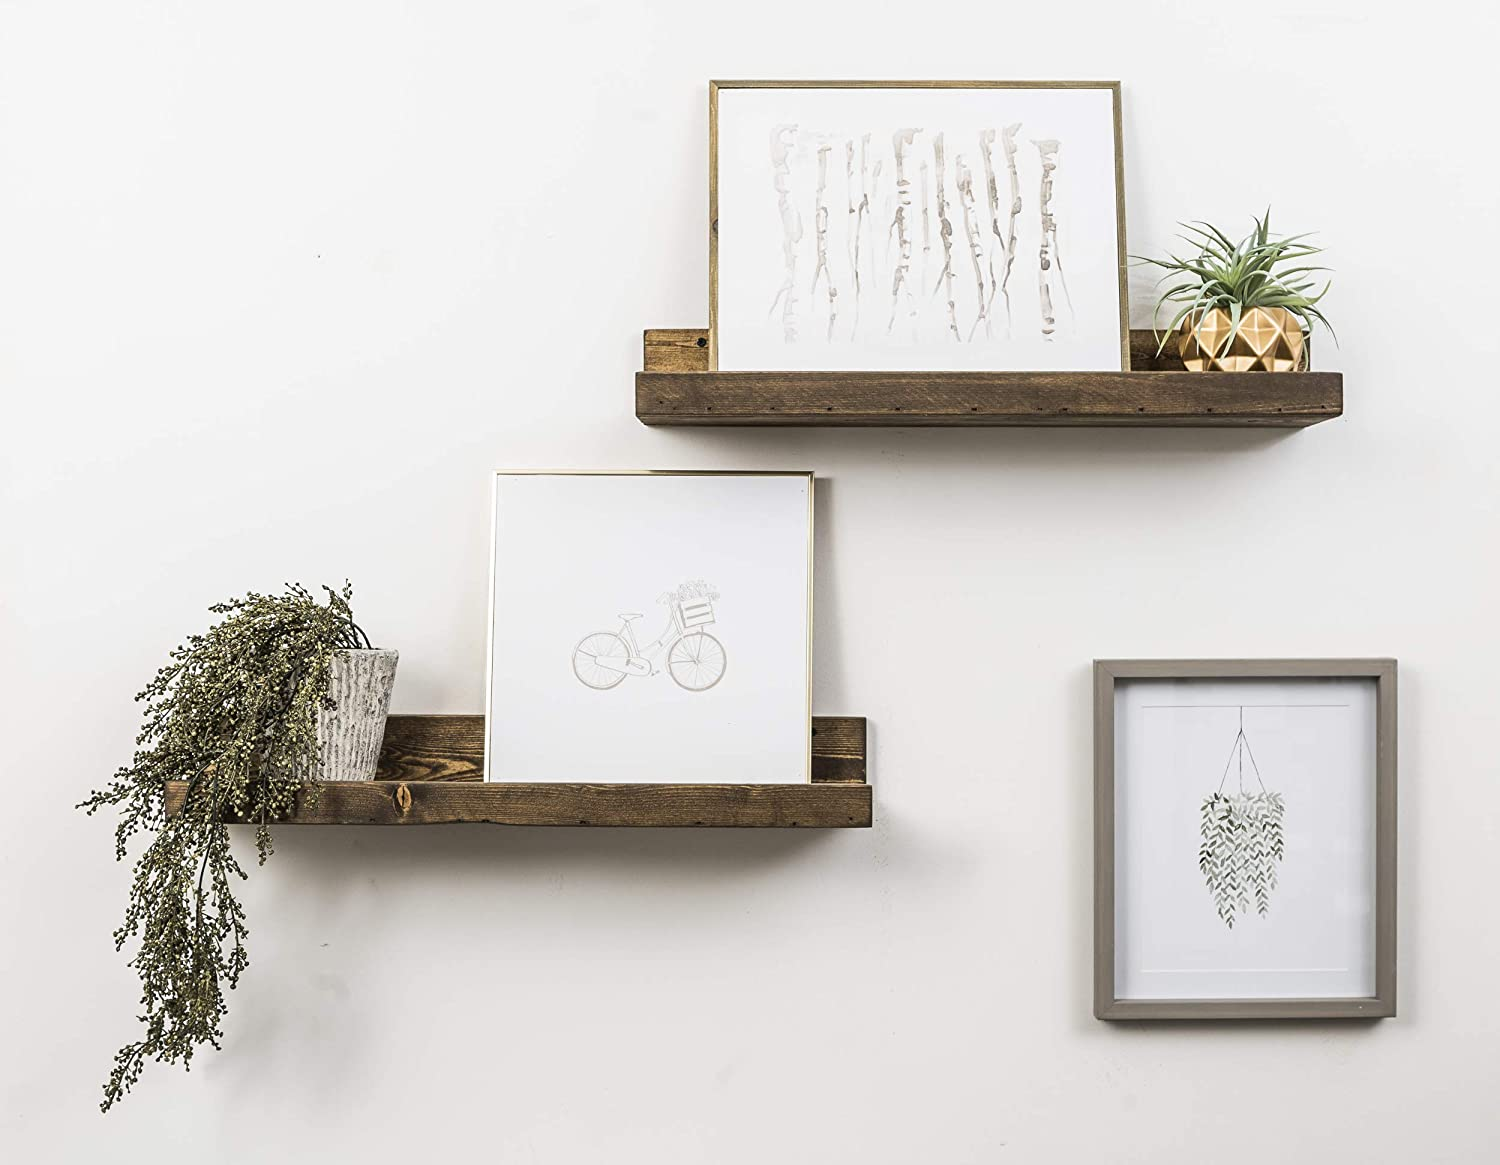 Walnut 2 Pack del Hutson Designs Handmade 5H x 24W x 7D-Inch Rustic Luxe Floating Shelves